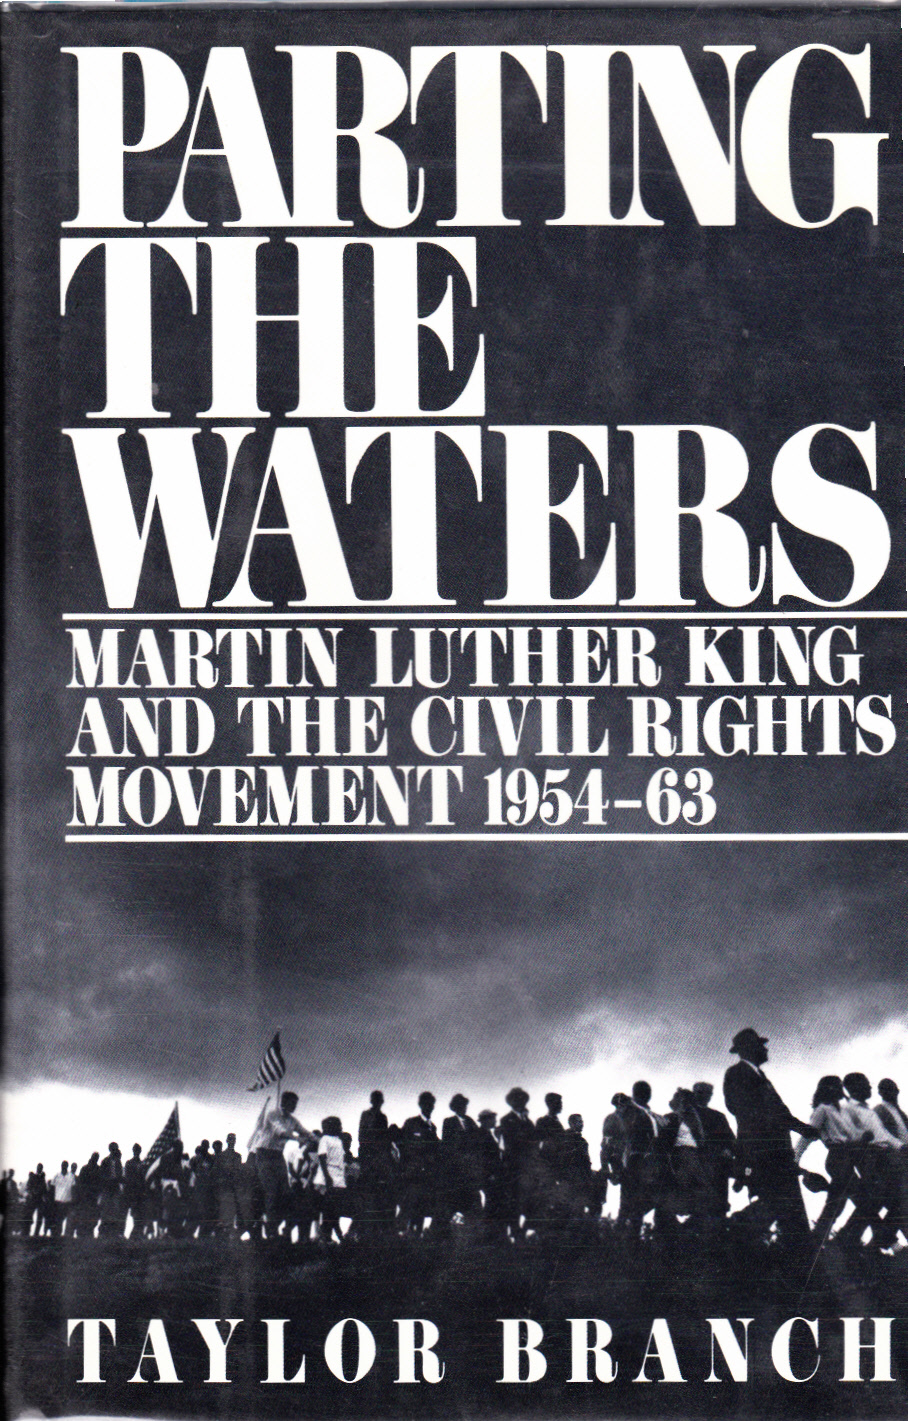 Image for Parting the Waters: Martin Luther King and the Civil Rights Movement, 1954-63